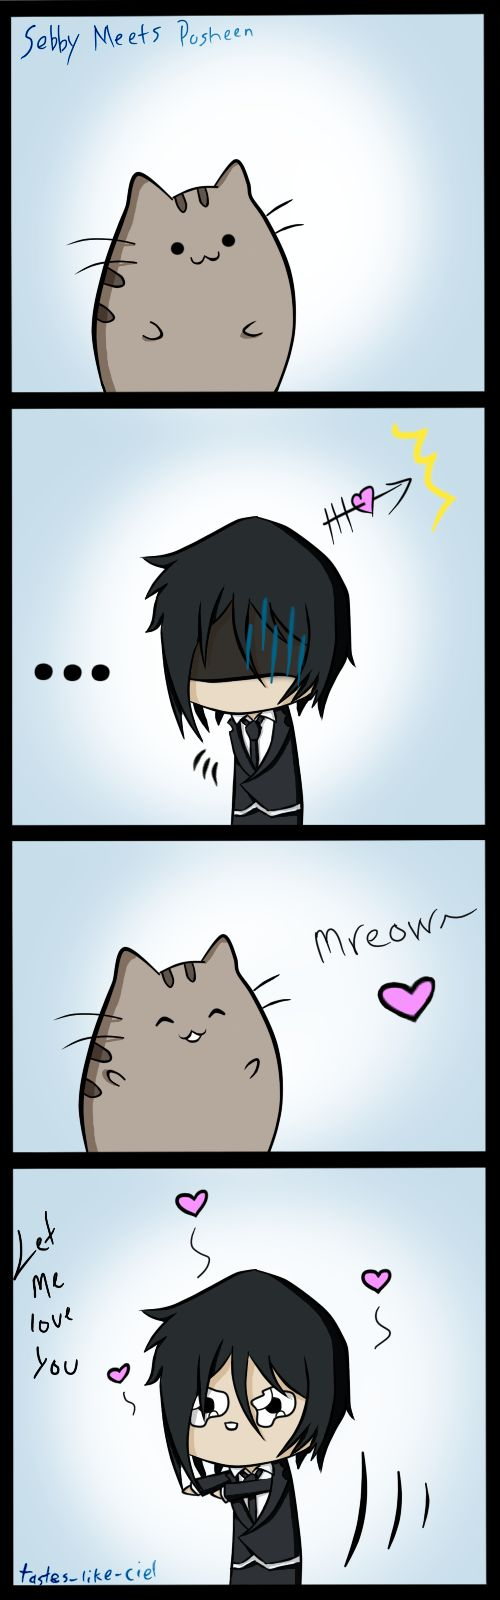 that would be his exact reaction xD except he would already be killing the cat with hugs xD